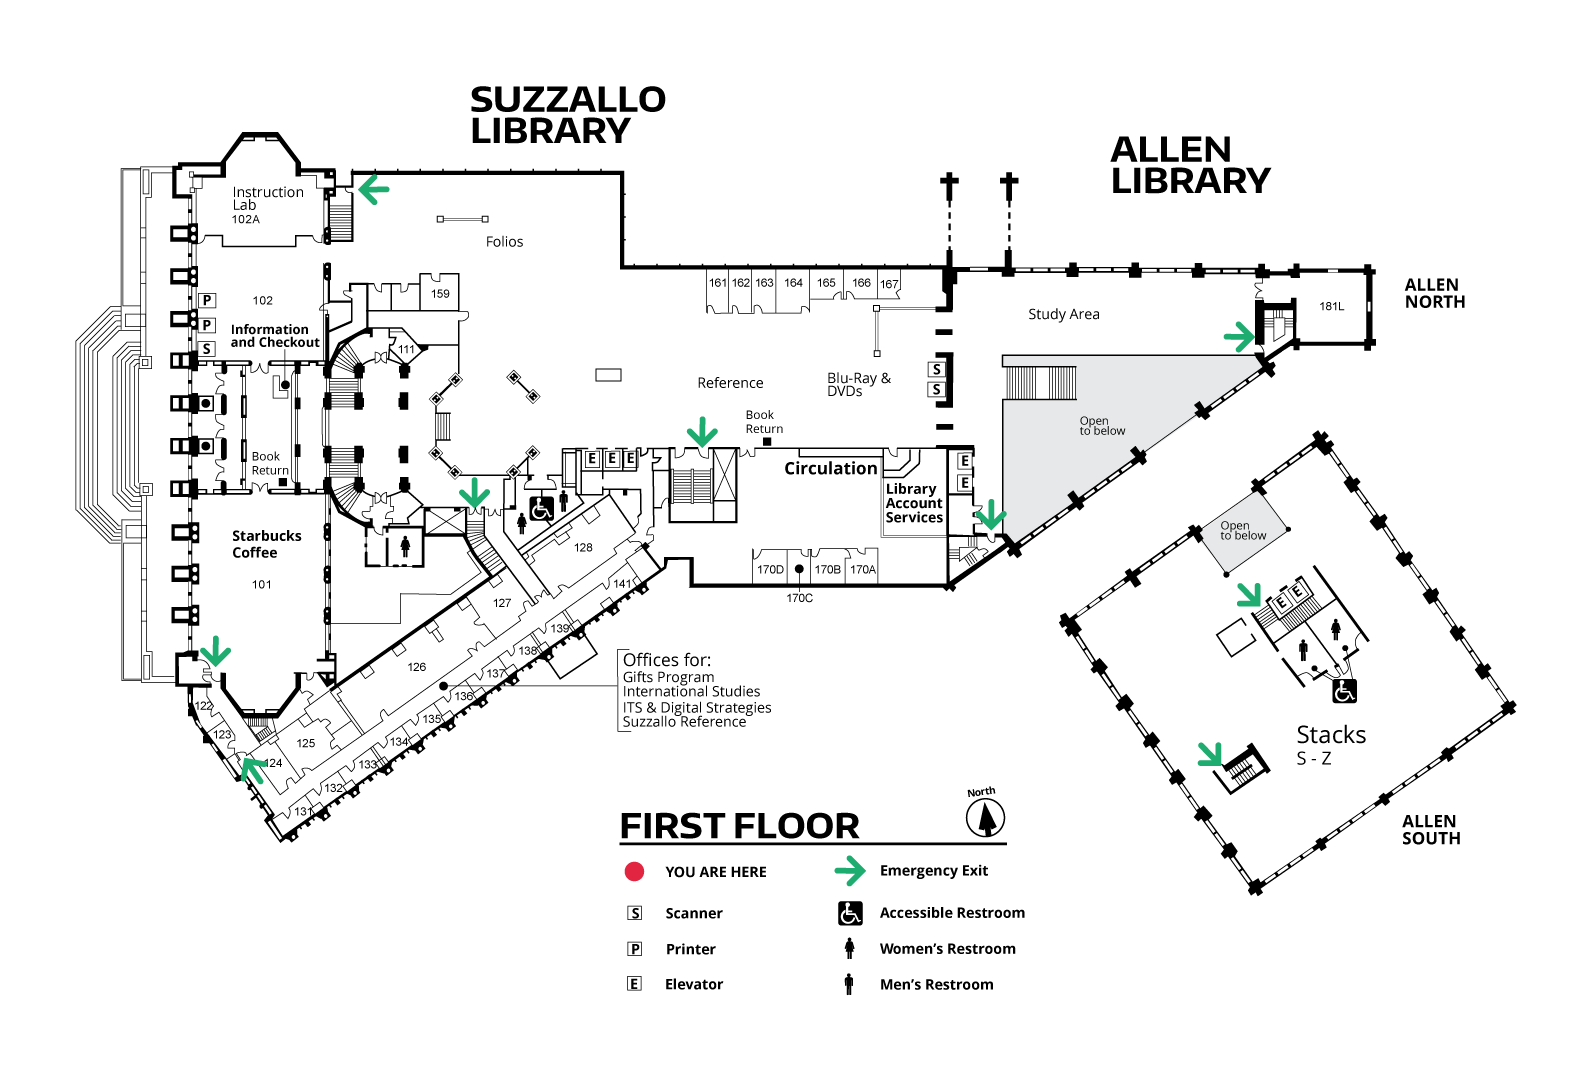 Suzzallo and Allen First Floor Map